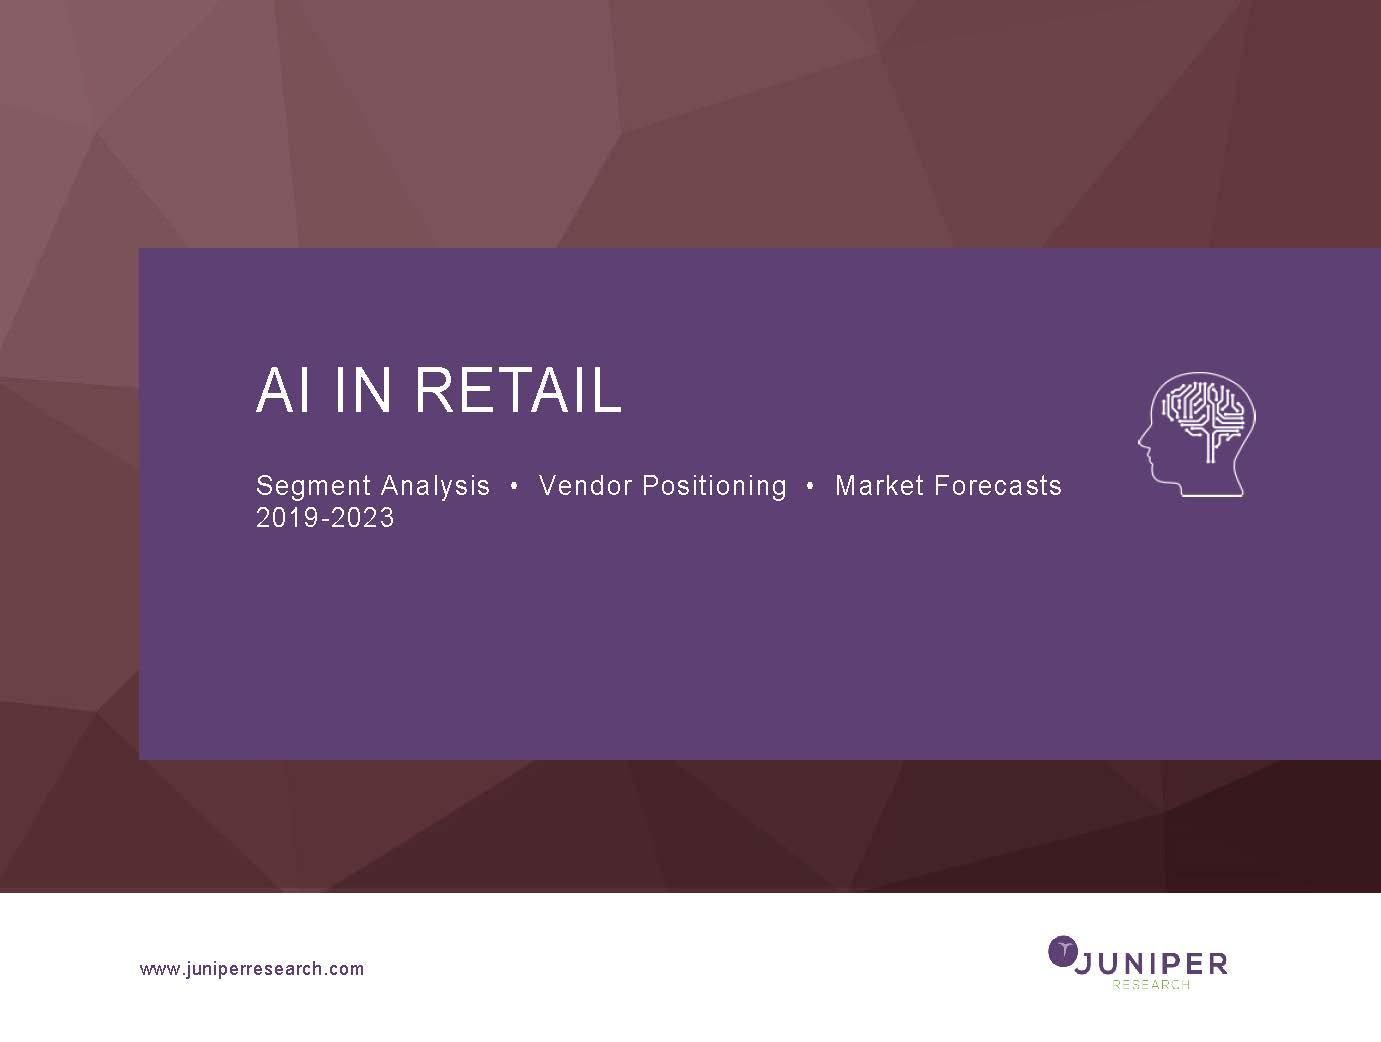 AI in Retail: Segment Analysis, Vendor Positioning & Market Forecasts 2019-2023